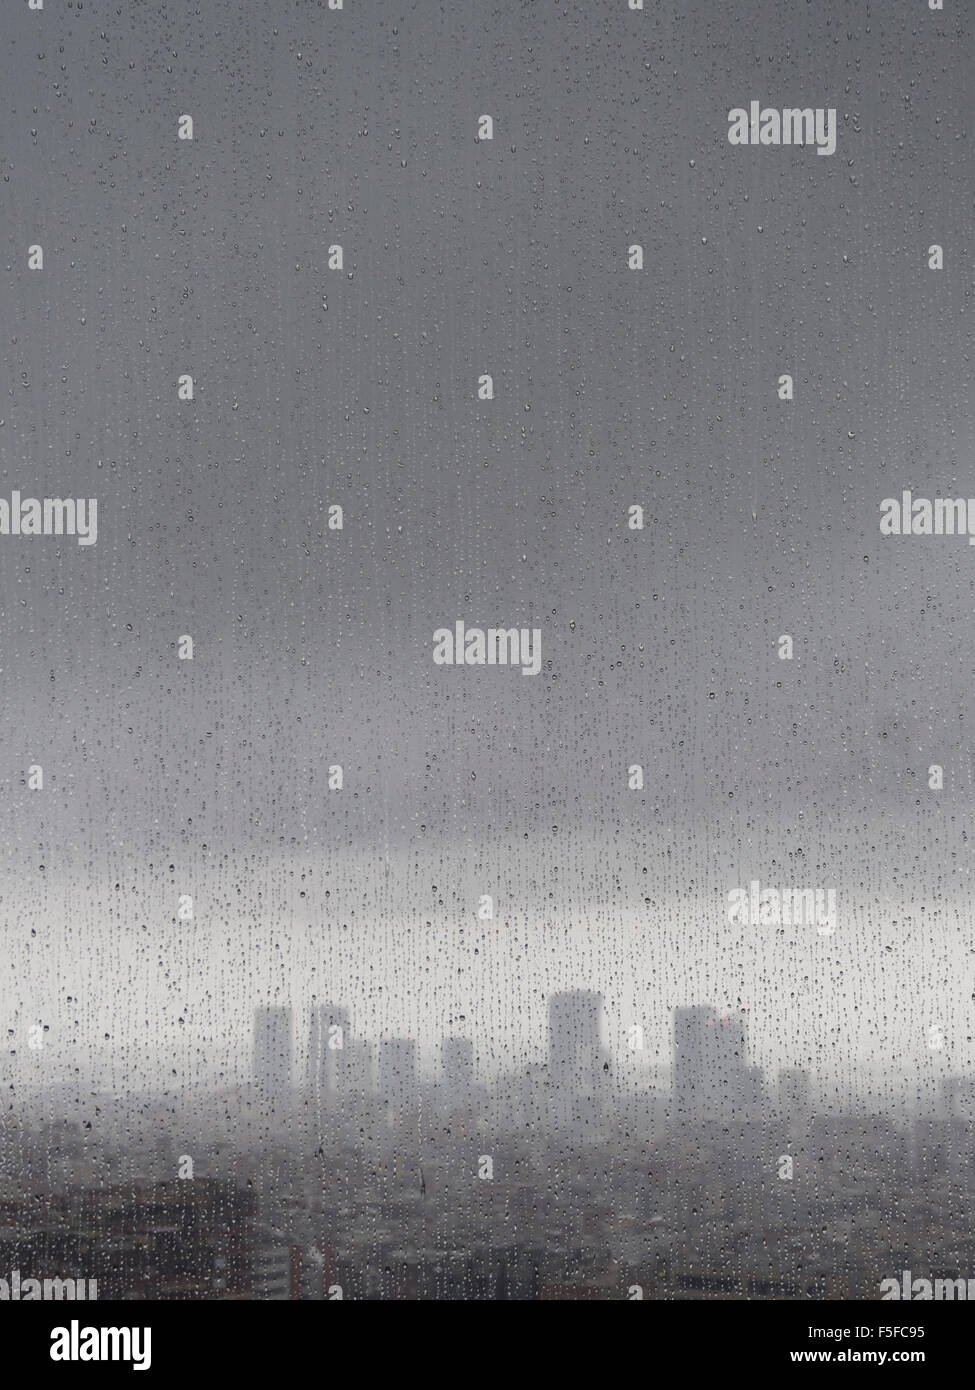 After heavy rainfall, the diffuse skyline of Barcelona is emerging in the twilight behind raindrops on a window. - Stock Image